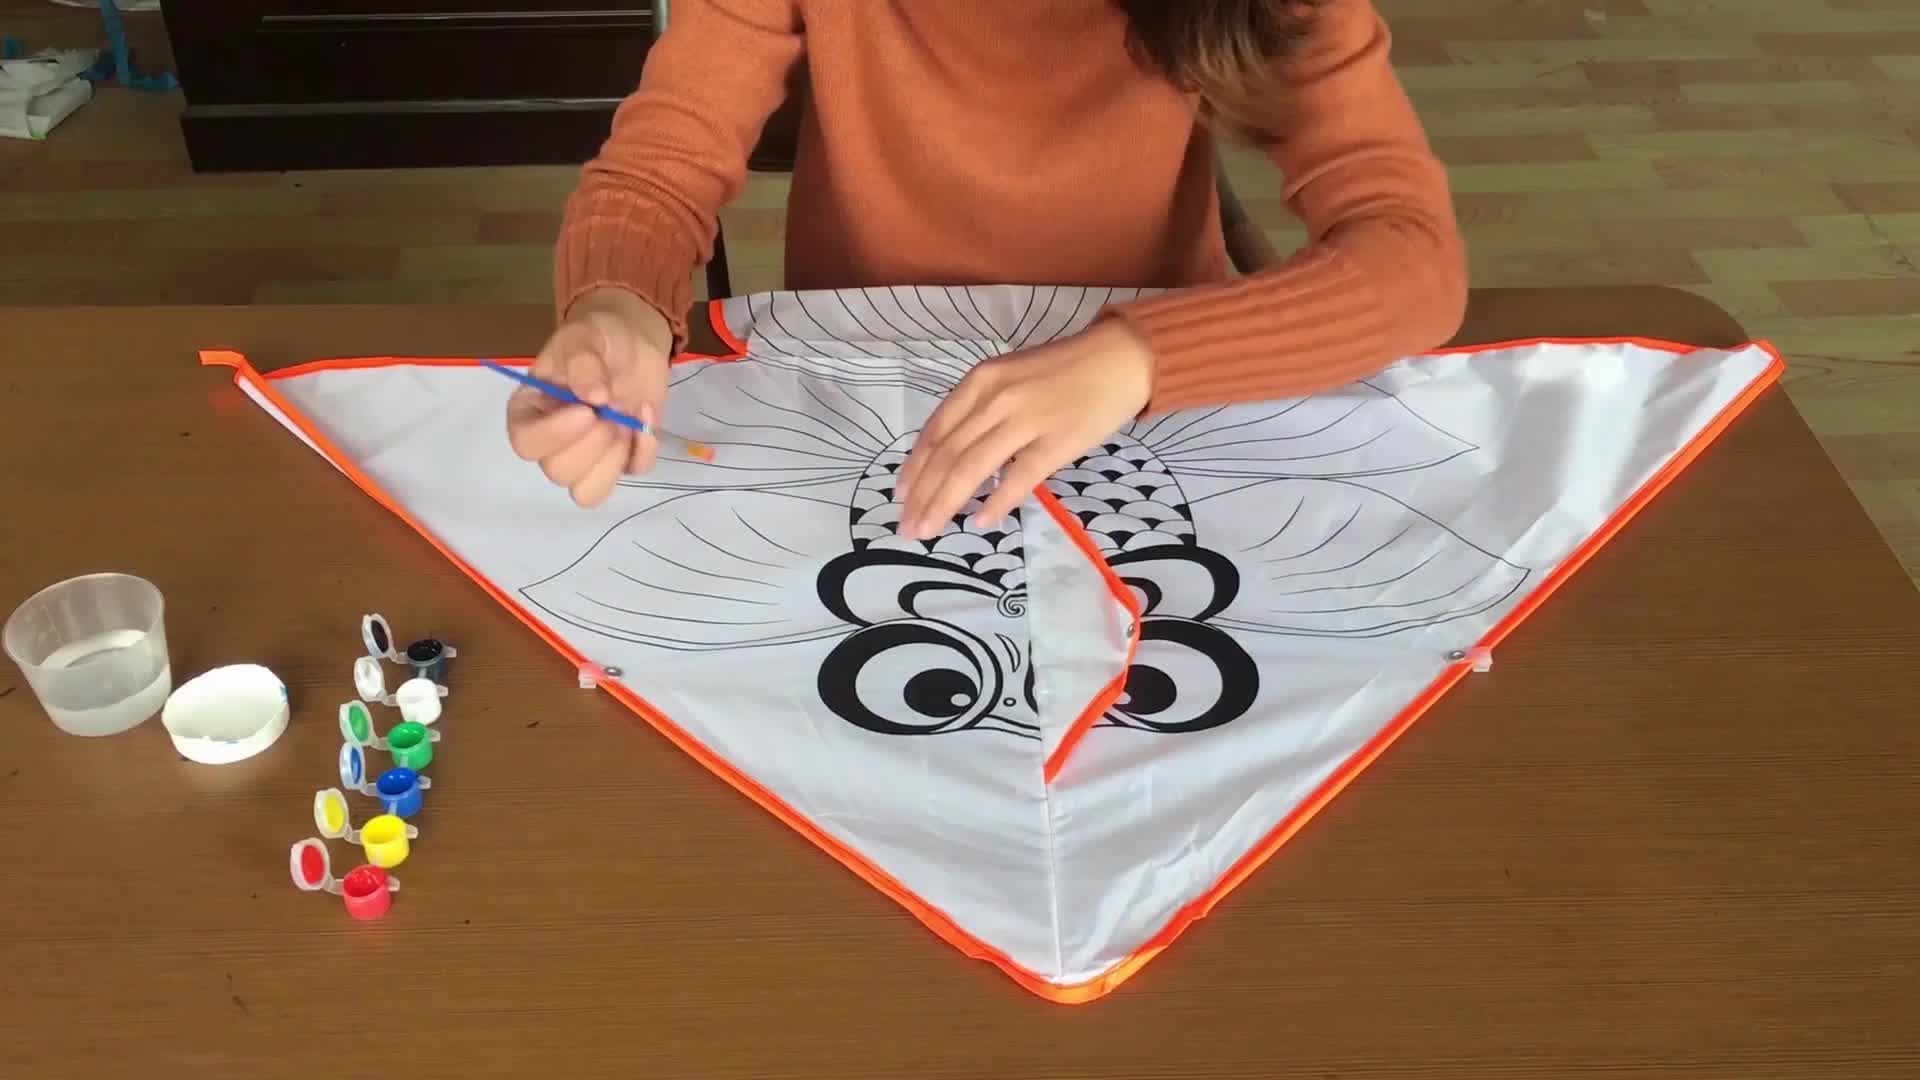 High quality  Kids Education  toys chinese Drawing  DIY  kites for sale